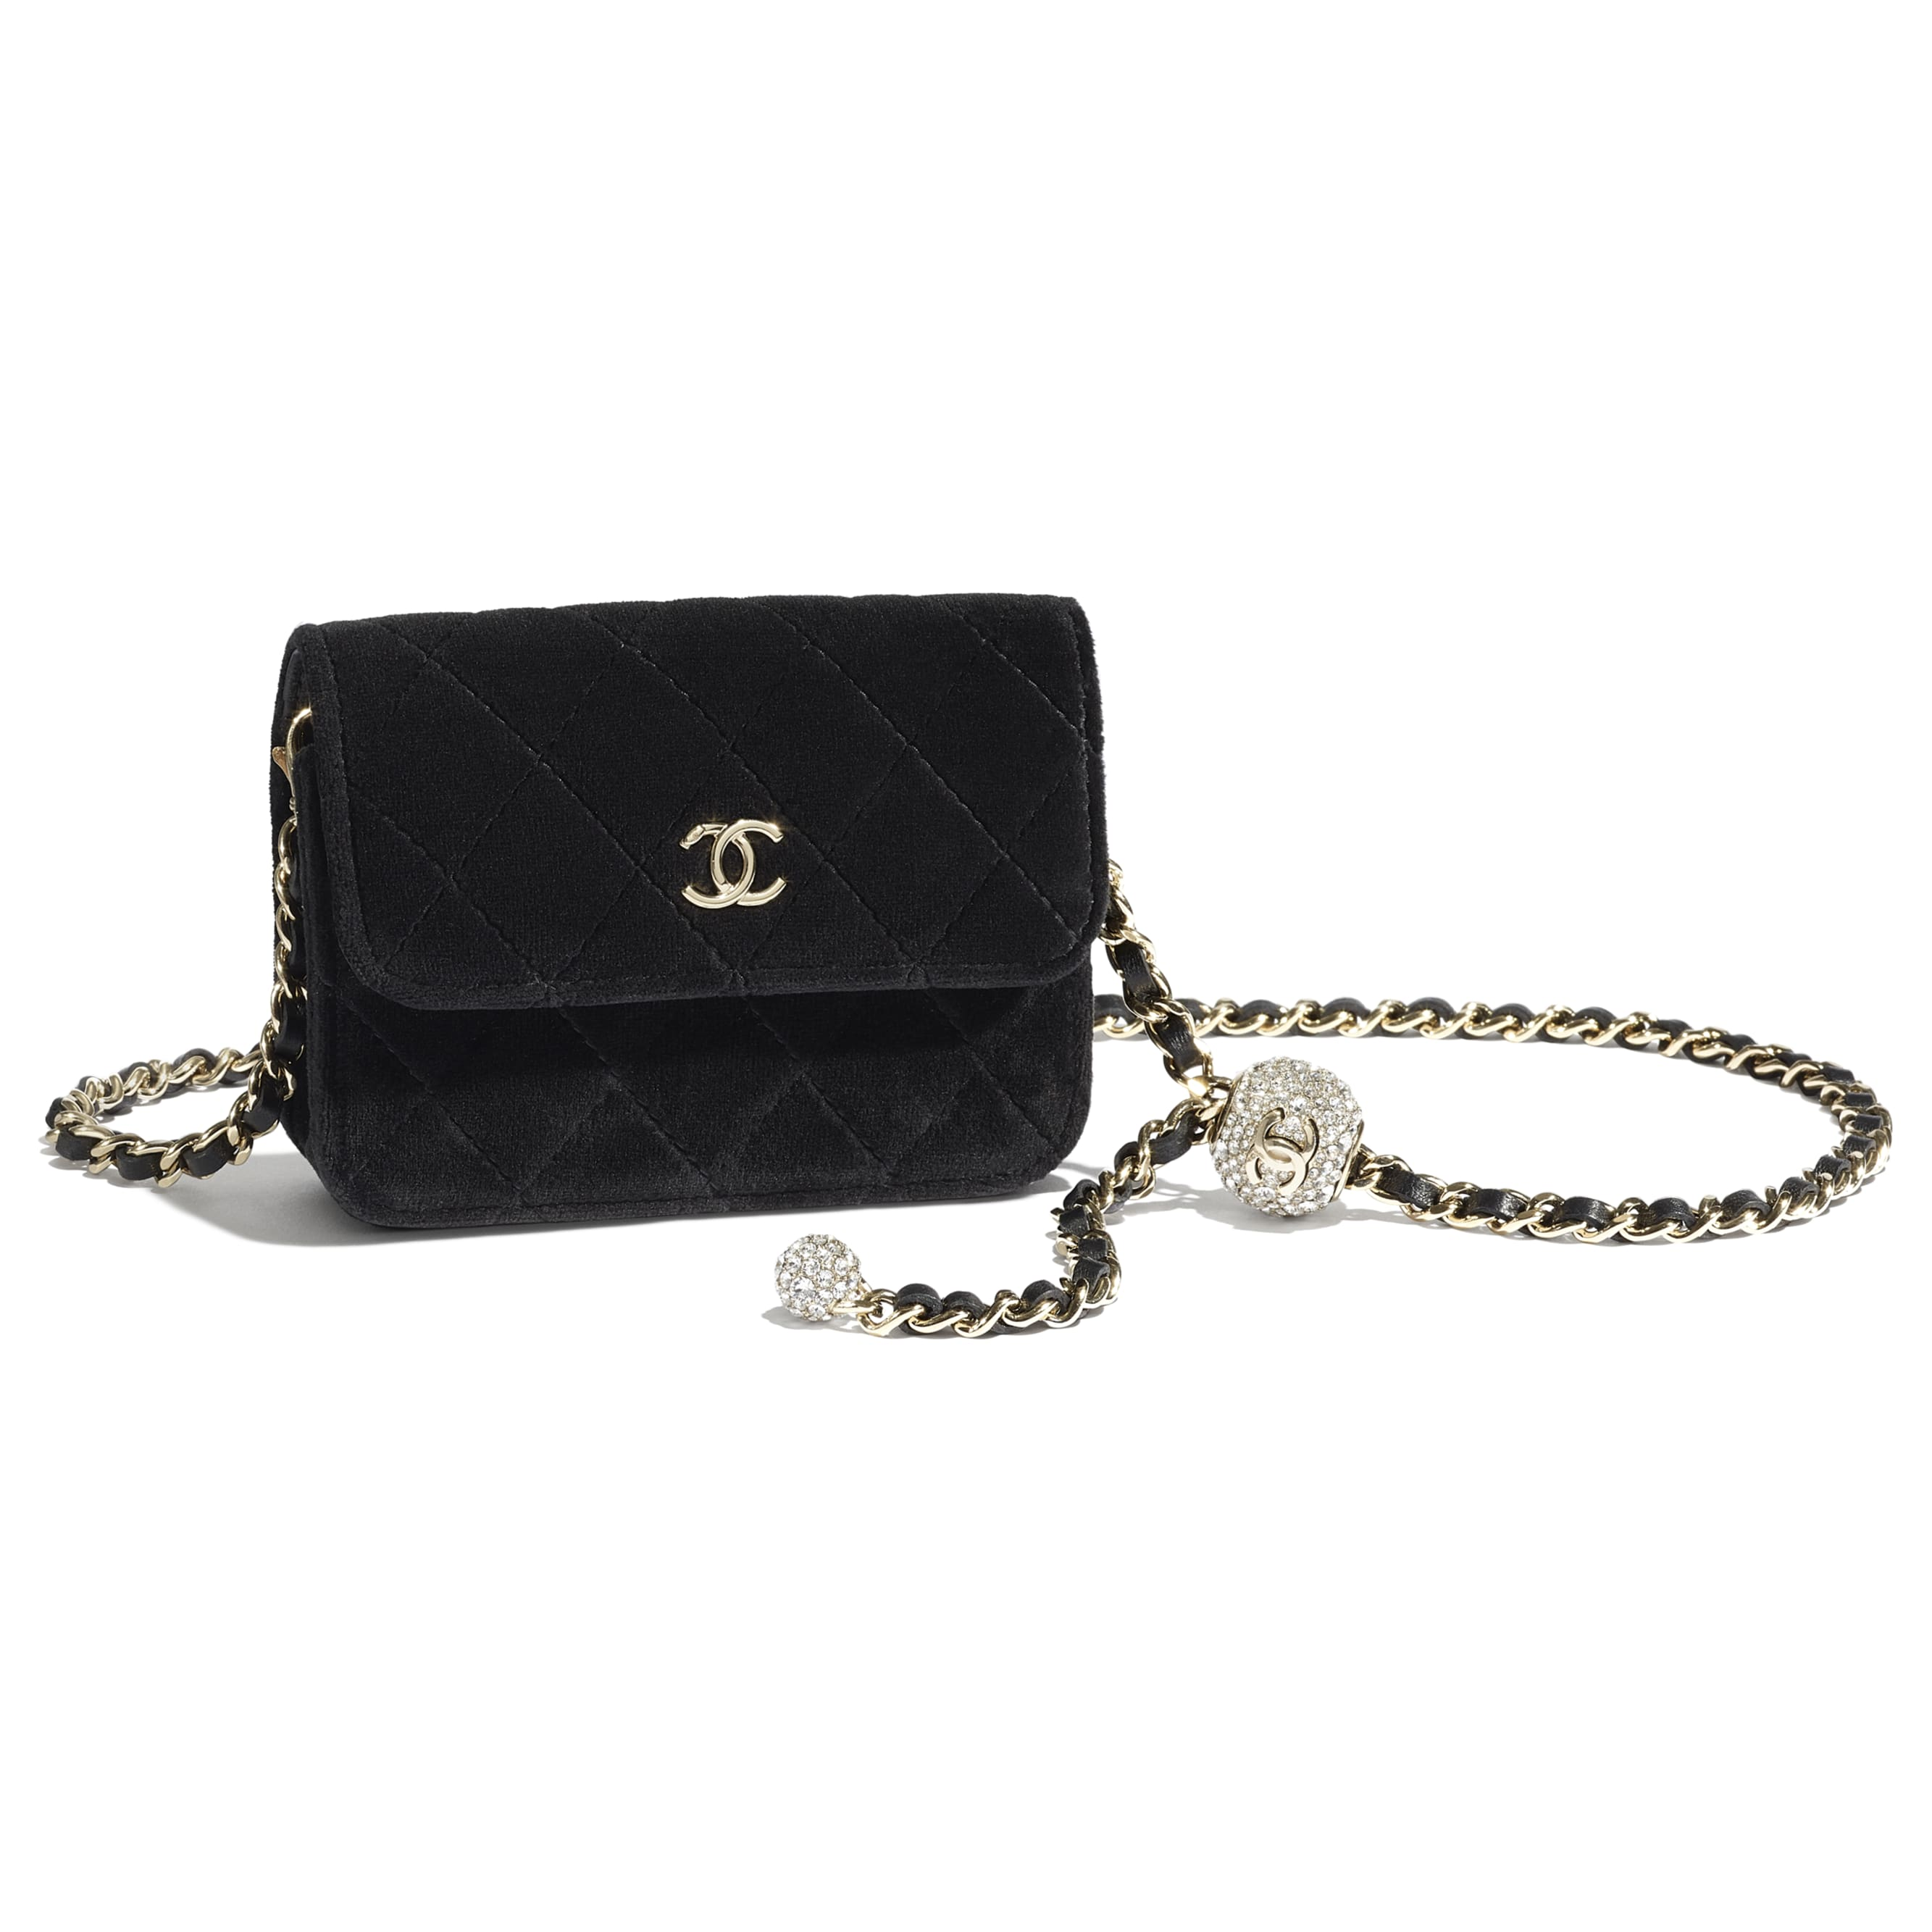 Clutch with Chain - Black - Velvet, Strass & Gold-Tone Metal - CHANEL - Other view - see standard sized version